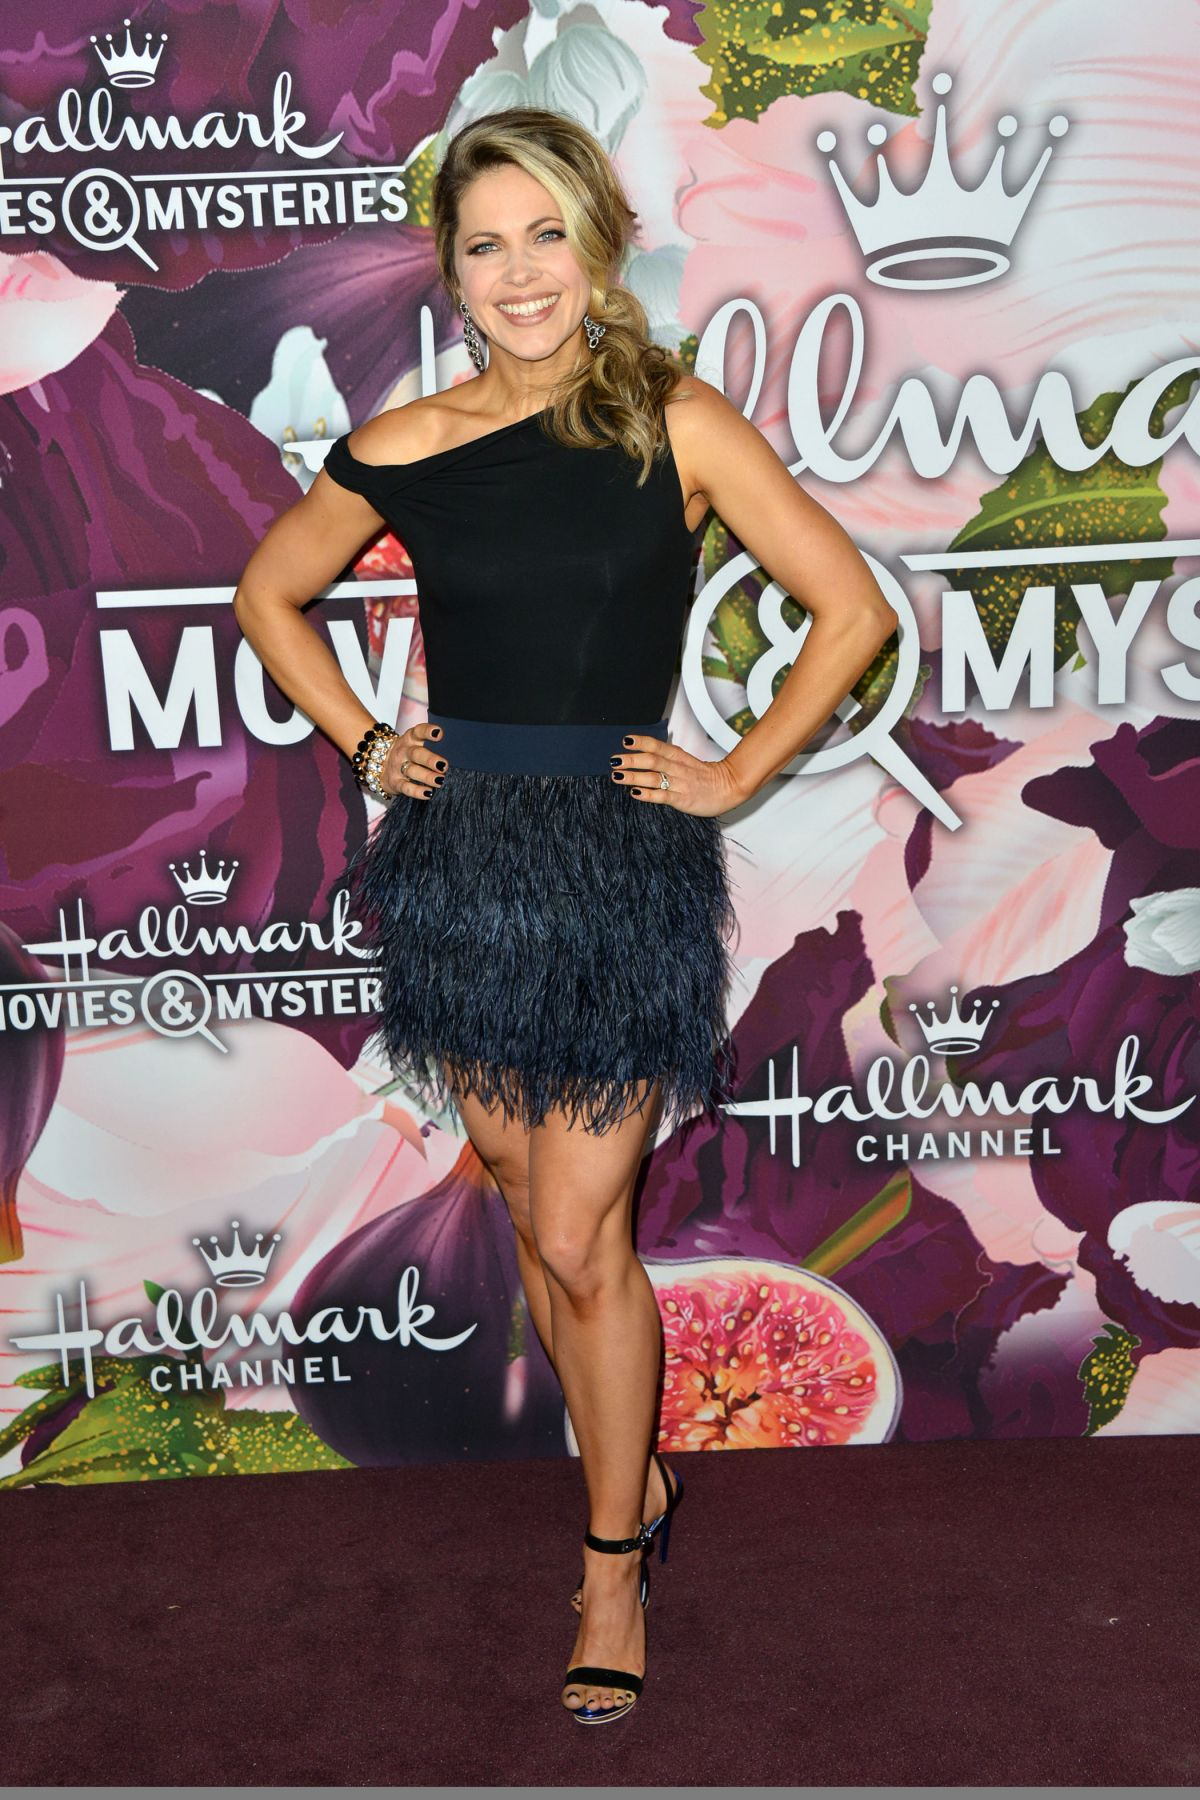 Pascale hutton at hallmark channel and hallmark movies and for Hallmark movies and mysteries channel